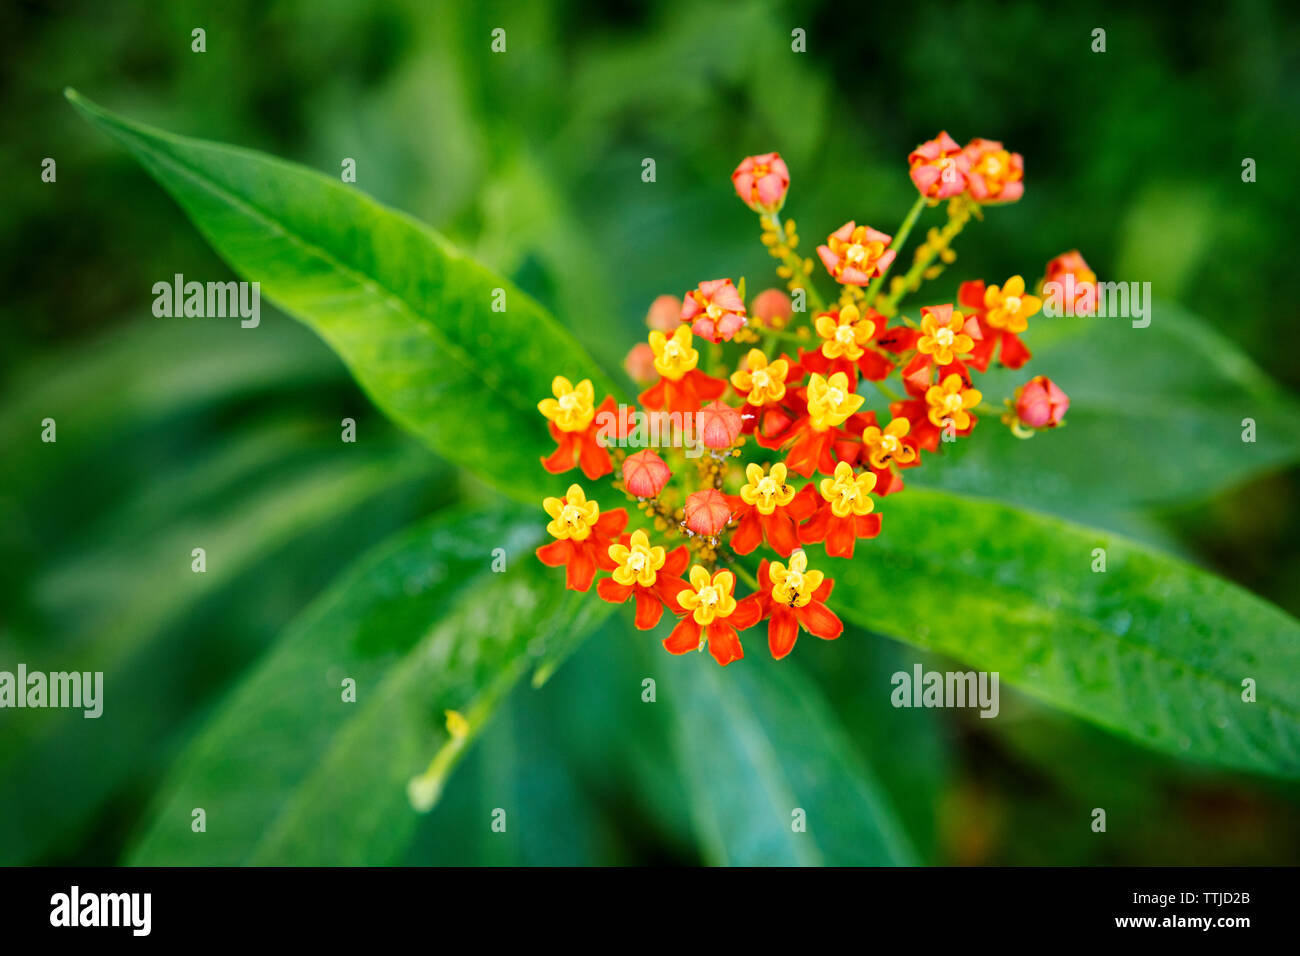 Overhead view of lantana camara blooming on plant at park - Stock Image